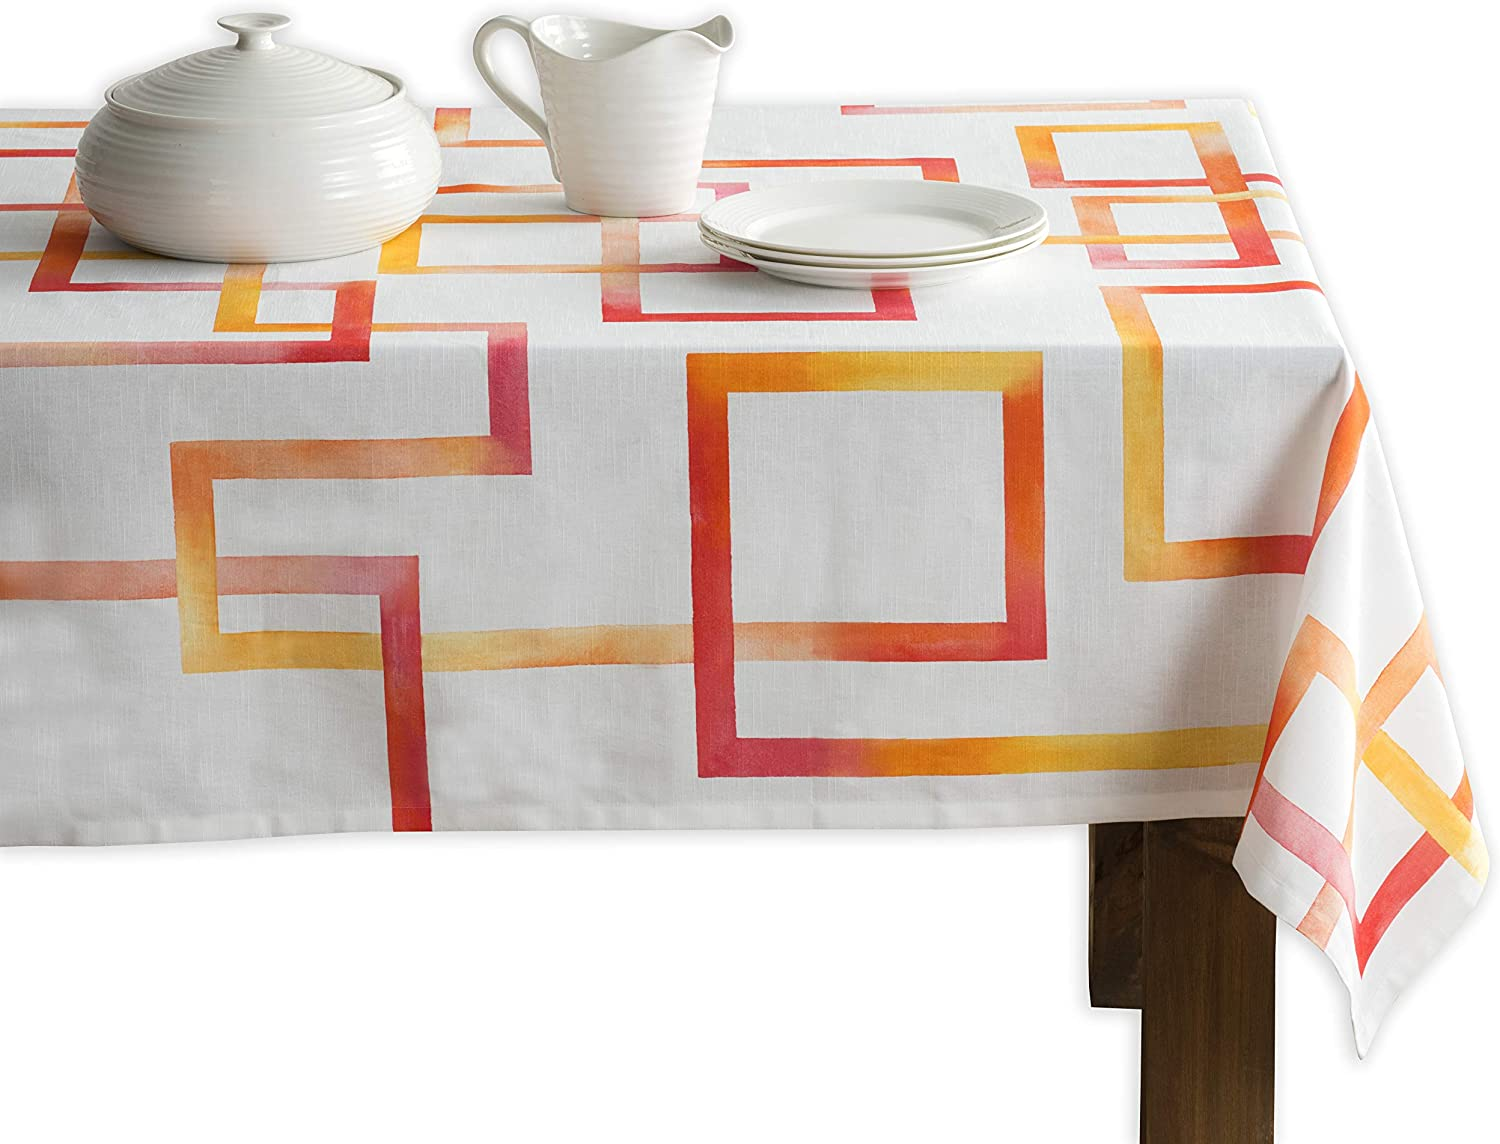 Maison d' Hermine Summer Maze 100% Cotton Tablecloth for Kitchen Dining   Tabletop   Decoration   Parties   Weddings   Spring/Summer (Square, 60 Inch by 60 Inch)